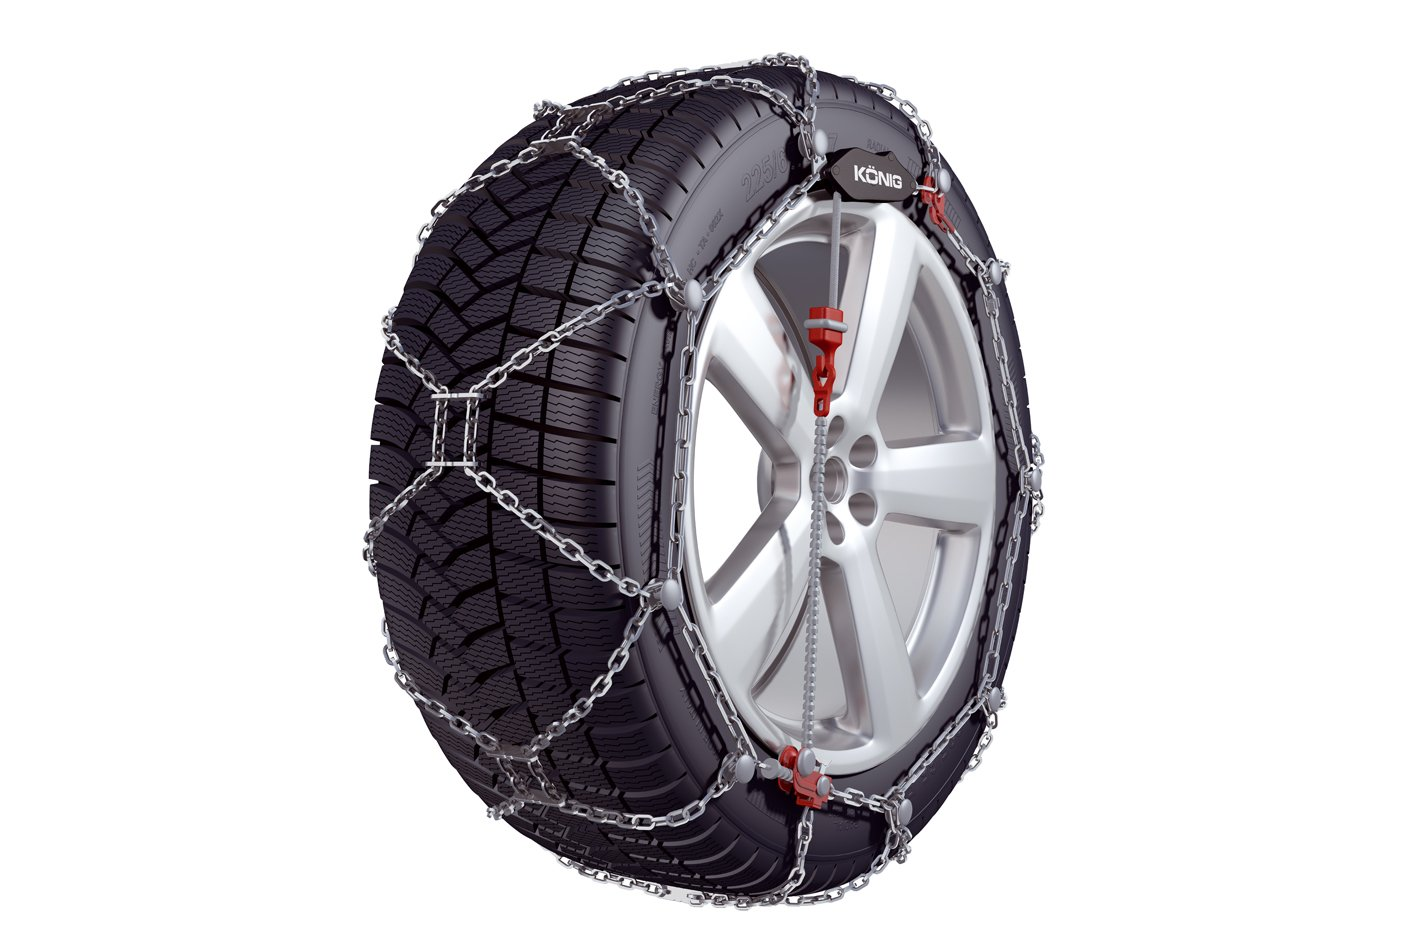 set of 2 Konig Distribution 2004705255 KONIG XG-12 PRO 255 Snow chains